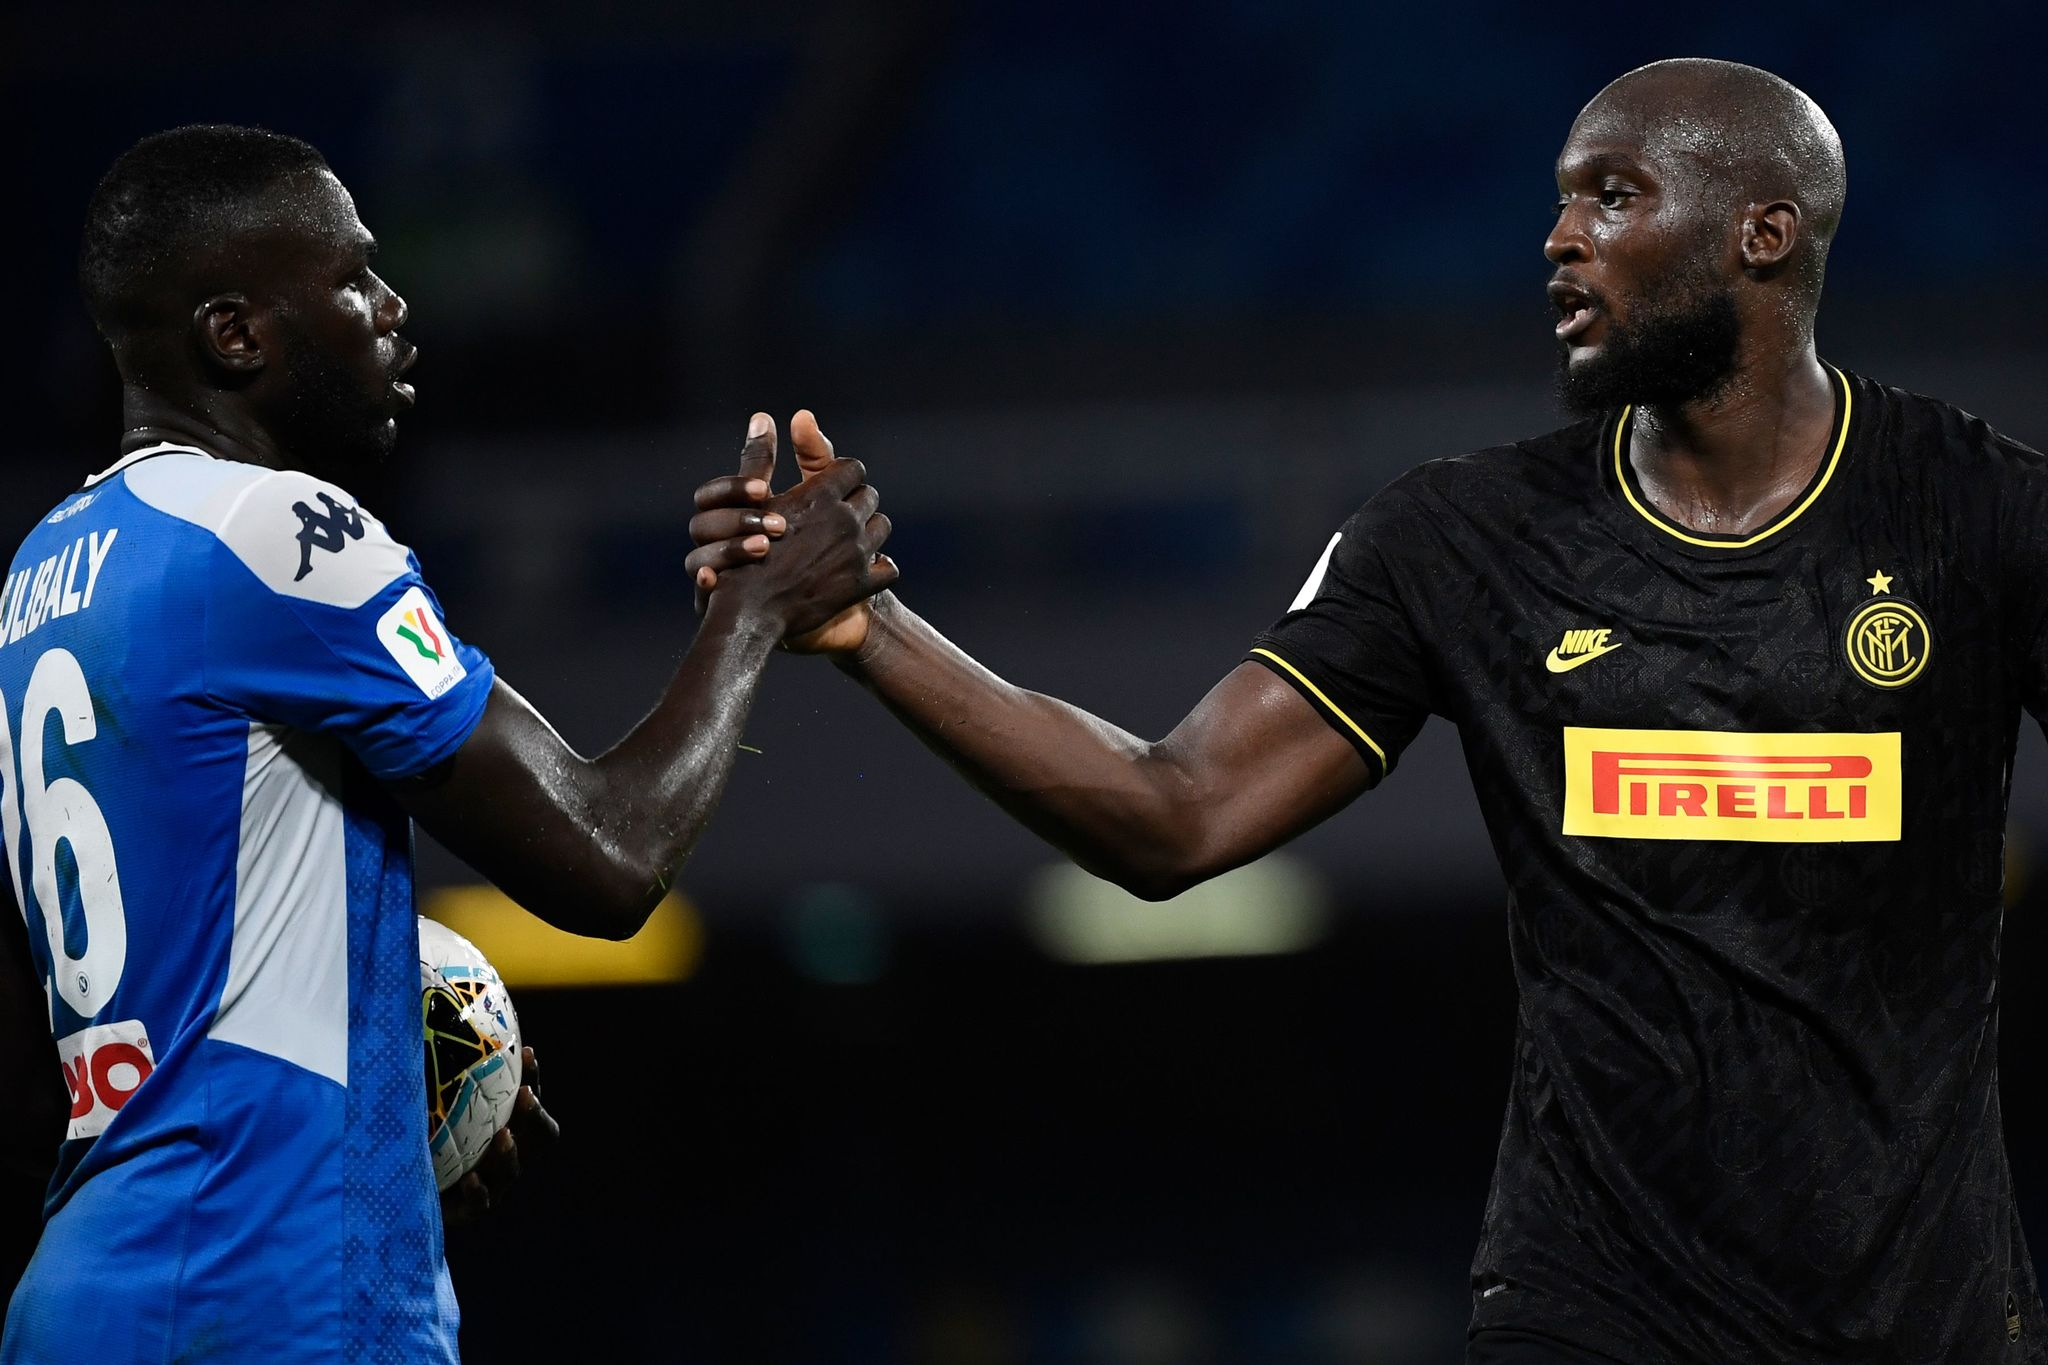 Napolis Senegalese defender Kalidou Koulibaly (L) and lt;HIT gt;Inter lt;/HIT gt; Milans Belgian forward Romelu Lukaku shake hands at the end of the Italian Cup (Coppa Italia) semi-final second leg football match Napoli vs lt;HIT gt;Inter lt;/HIT gt; Milan on June 13, 2020 at the San Paolo stadium in Naples, played behind closed doors as the country gradually eases its lockdown aimed at curbing the spread of the COVID-19 infection, caused by the novel coronavirus. (Photo by Filippo MONTEFORTE / AFP)